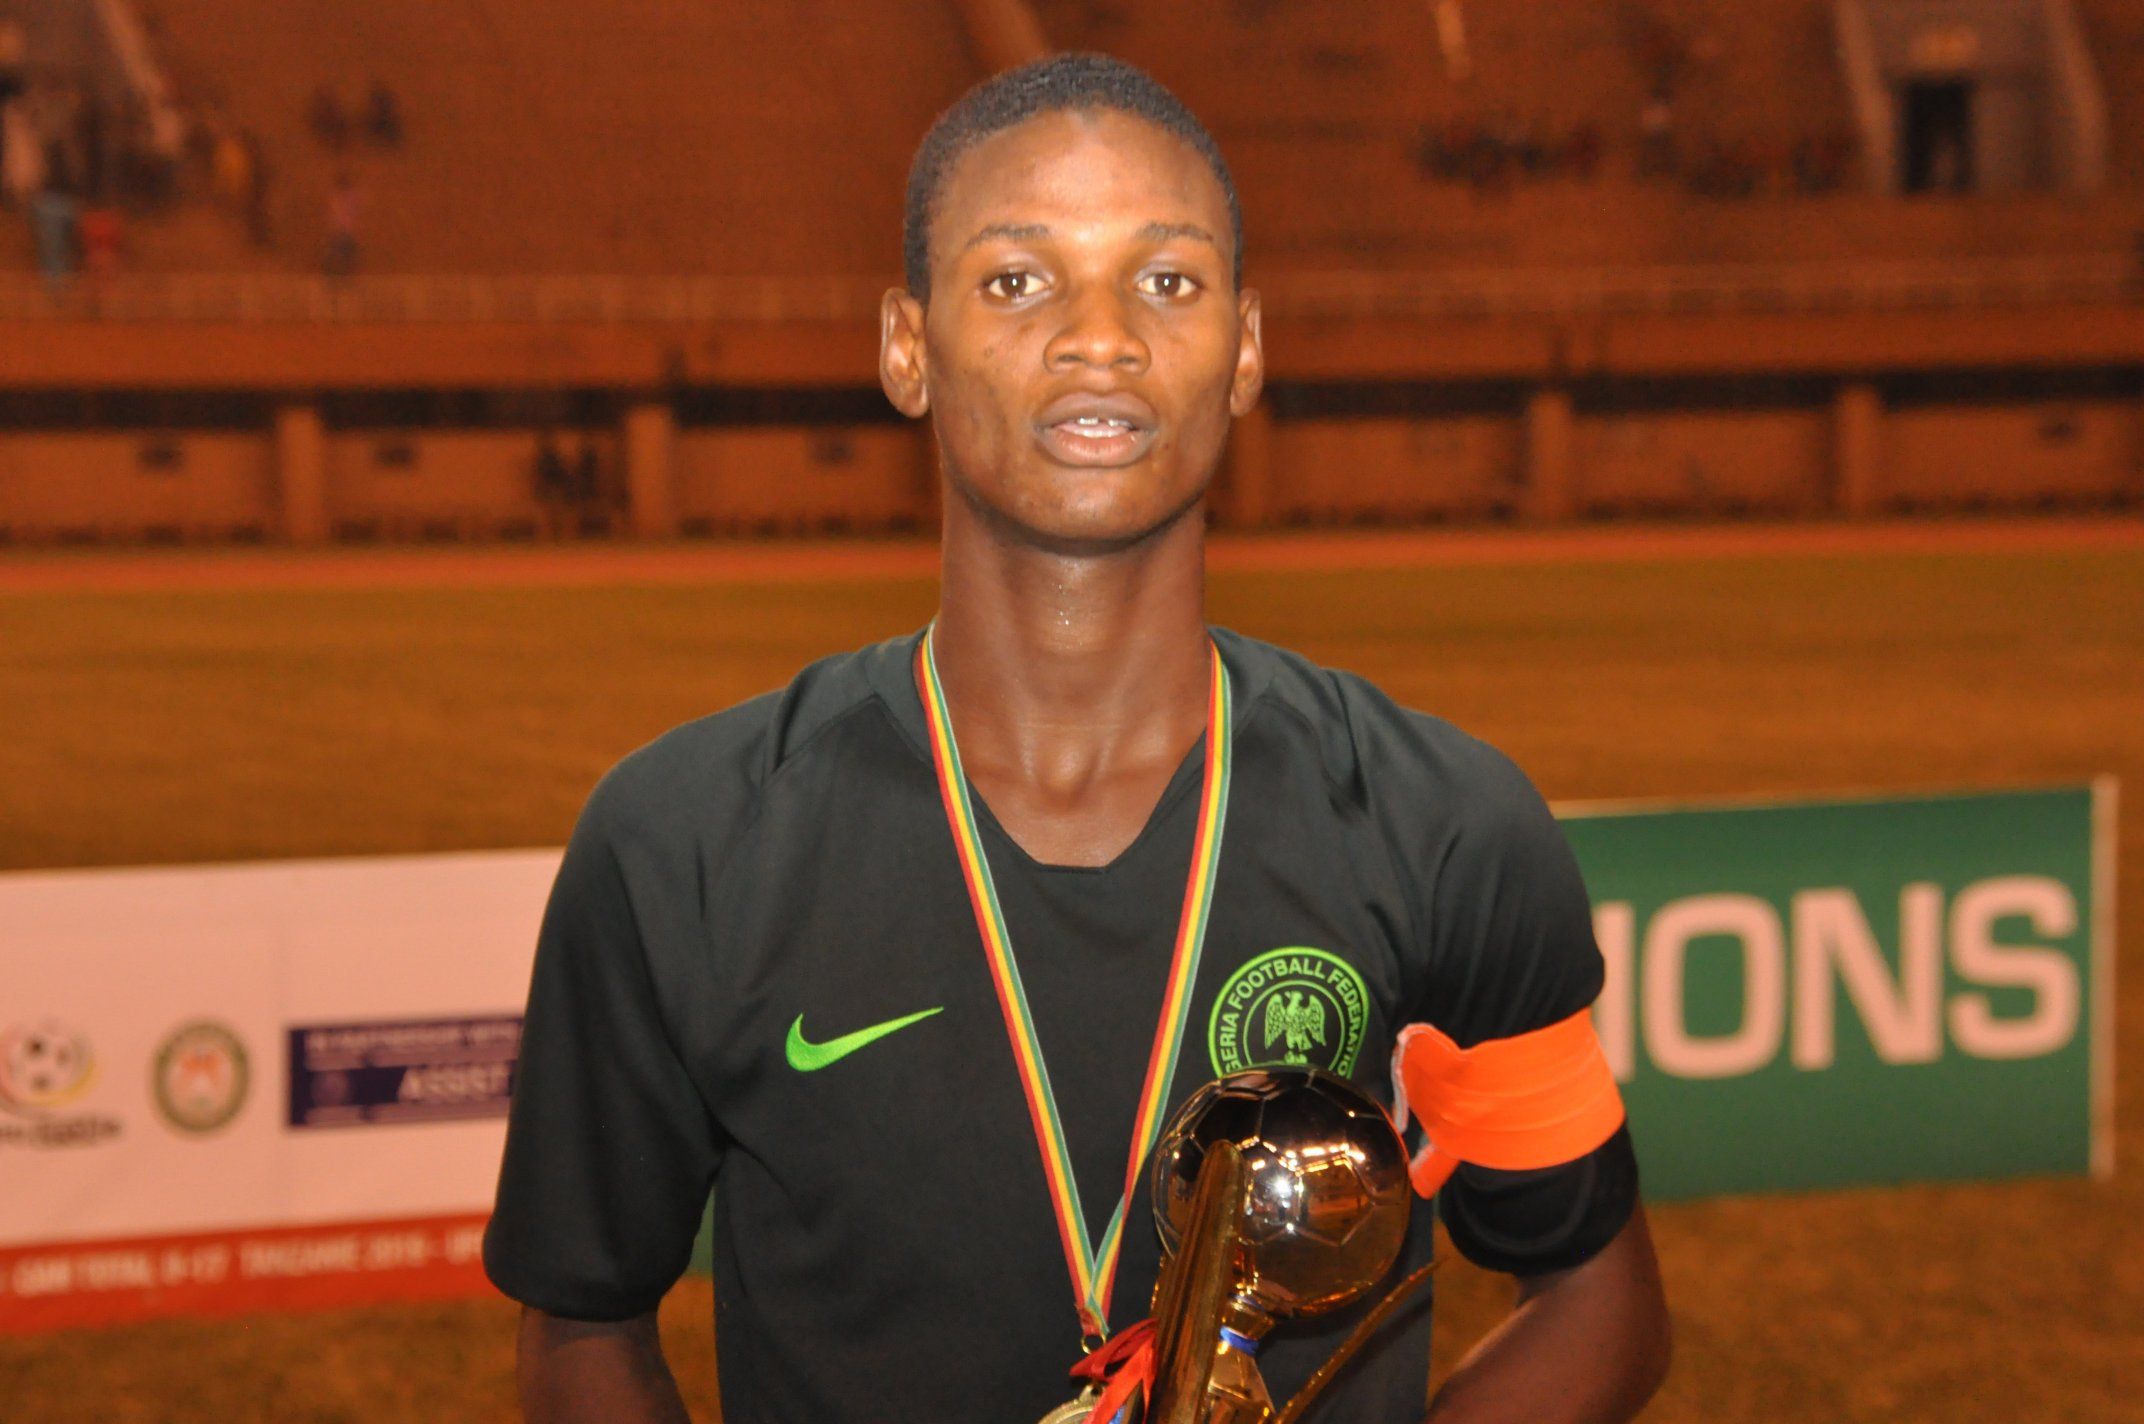 U17 World Cup: Goiania weather will not stop us against Hungary, says Tijani